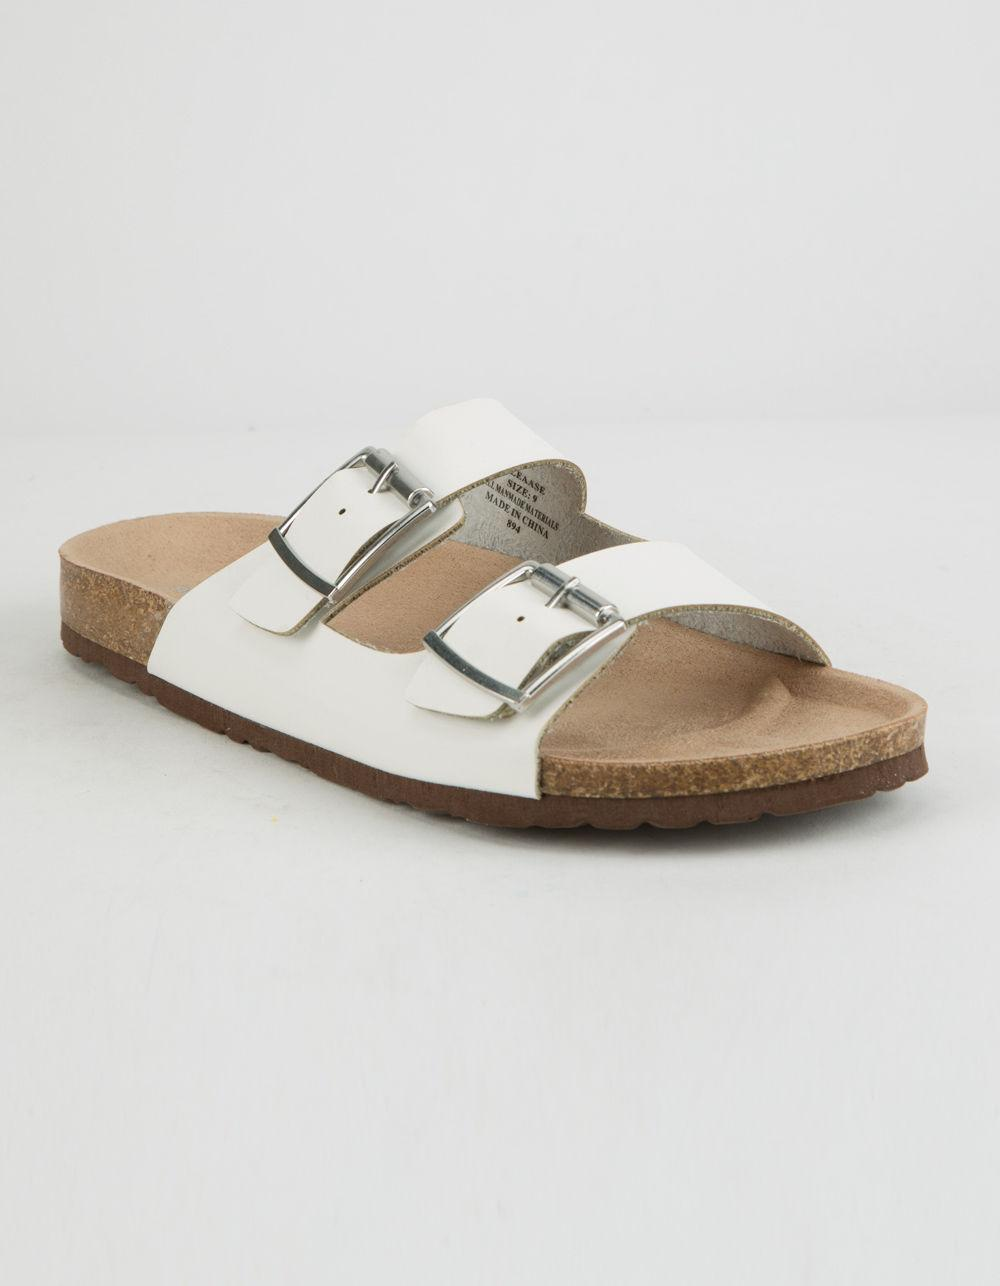 ff3e44112ed Lyst - Madden Girl Pleaase White Womens Sandals in White